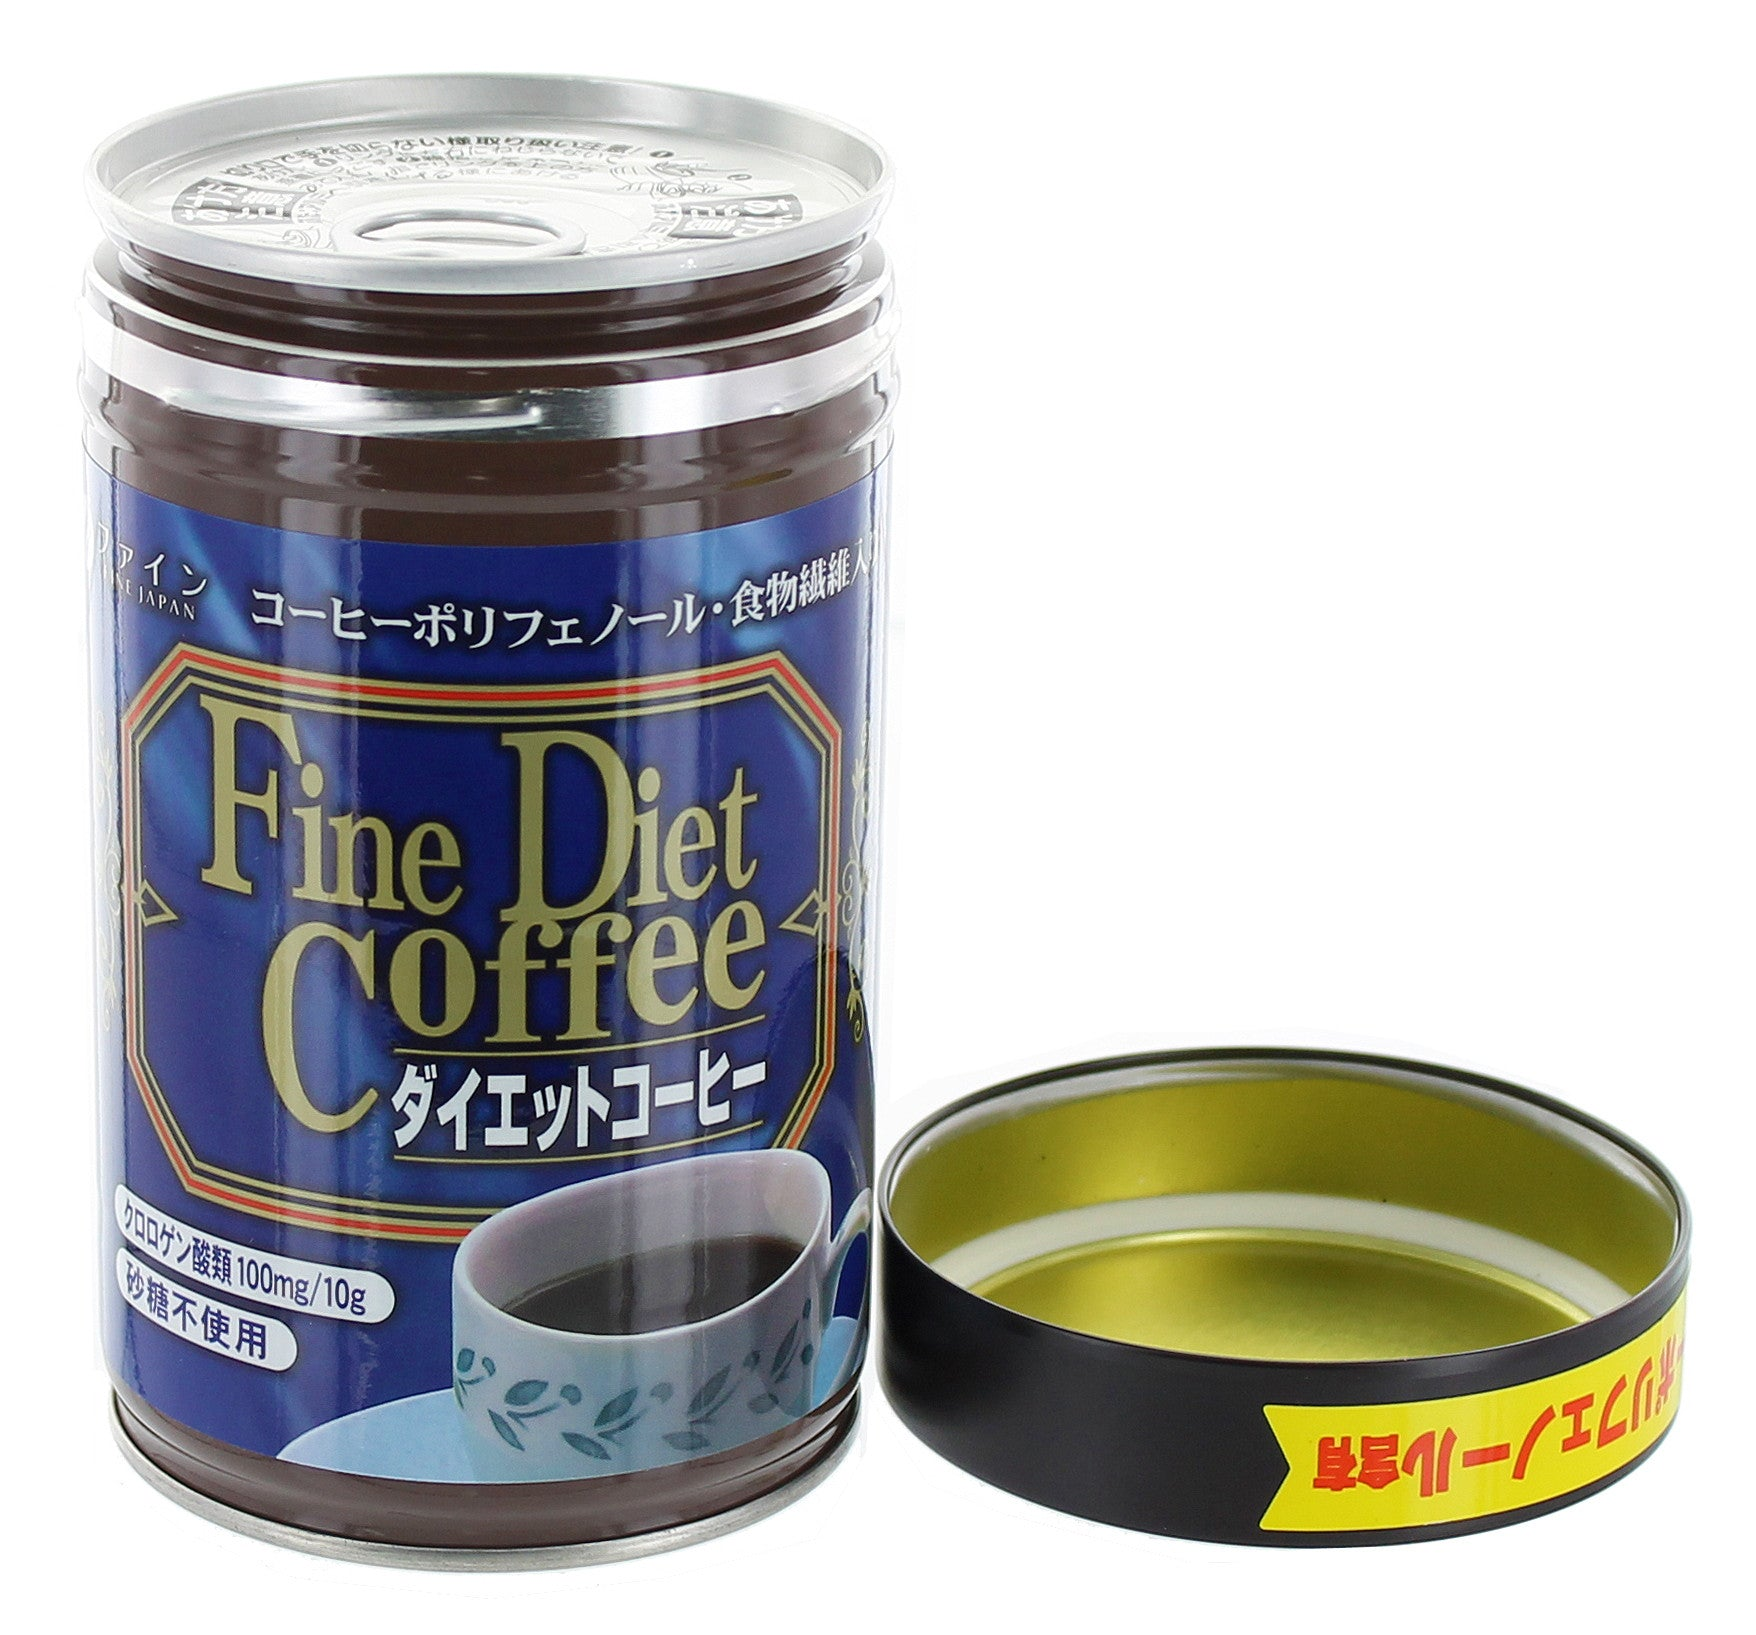 How many times we can drink green coffee in a day